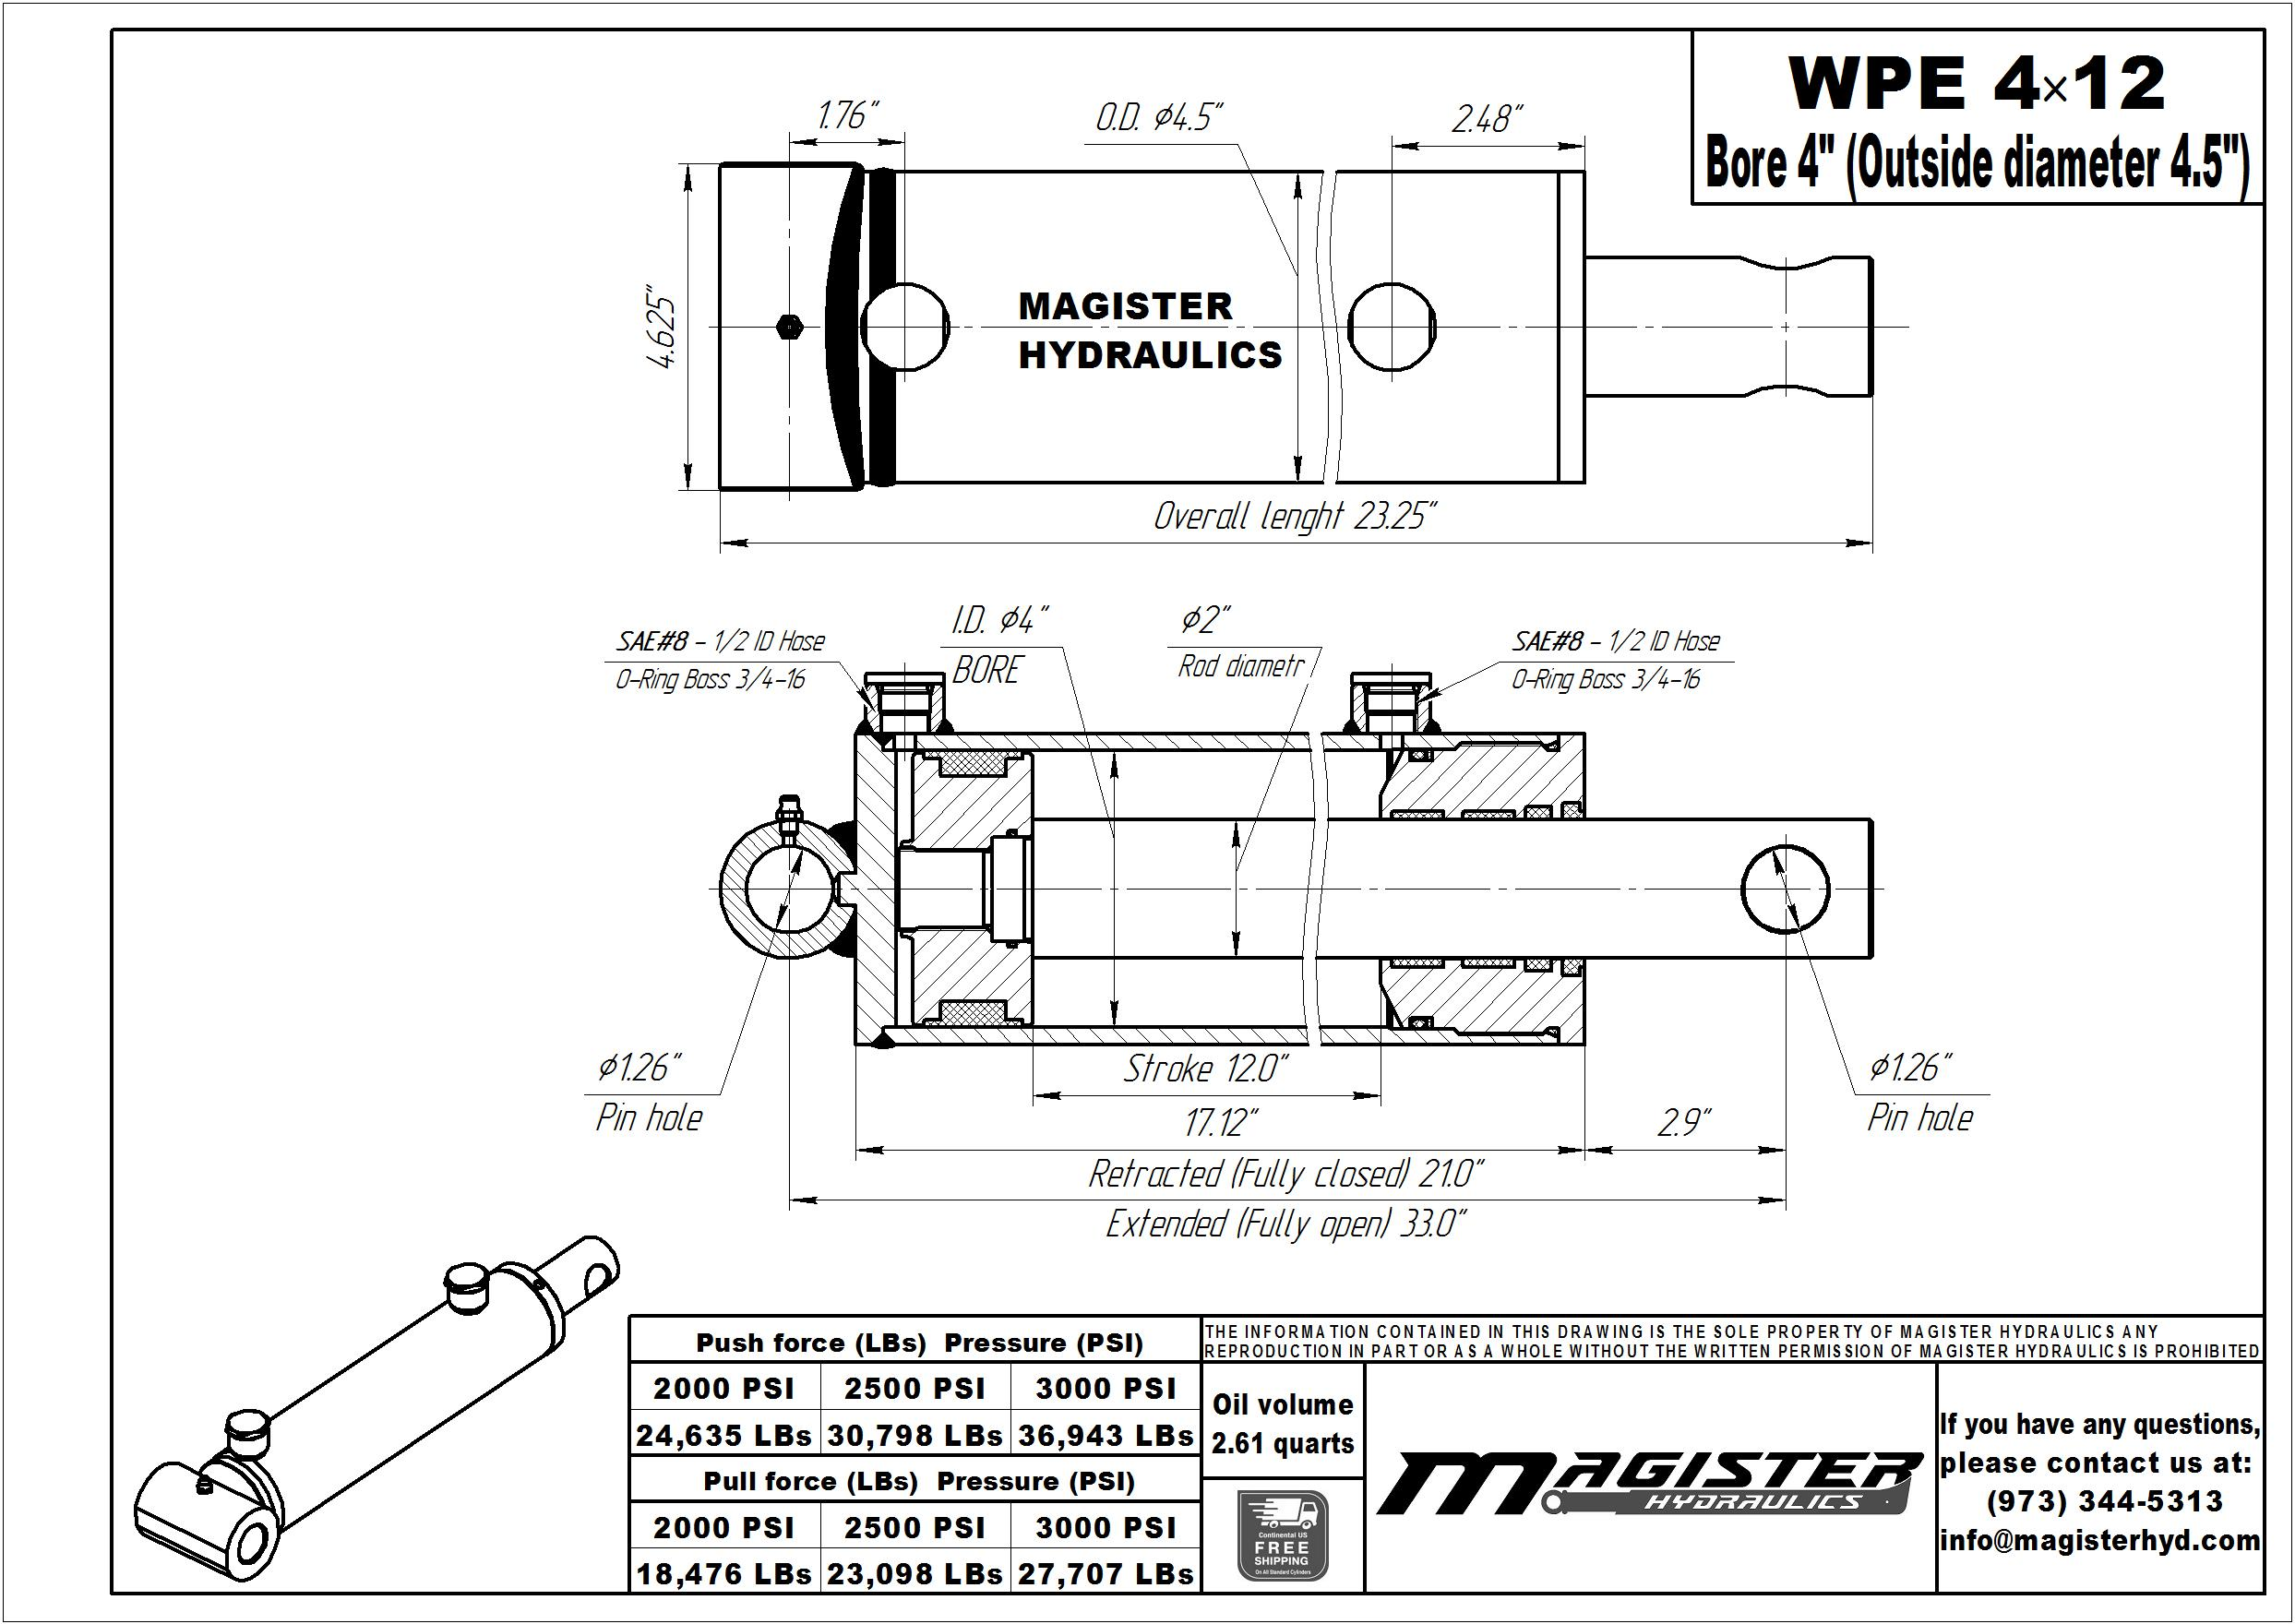 4 bore x 12 stroke hydraulic cylinder, welded pin eye double acting cylinder | Magister Hydraulics